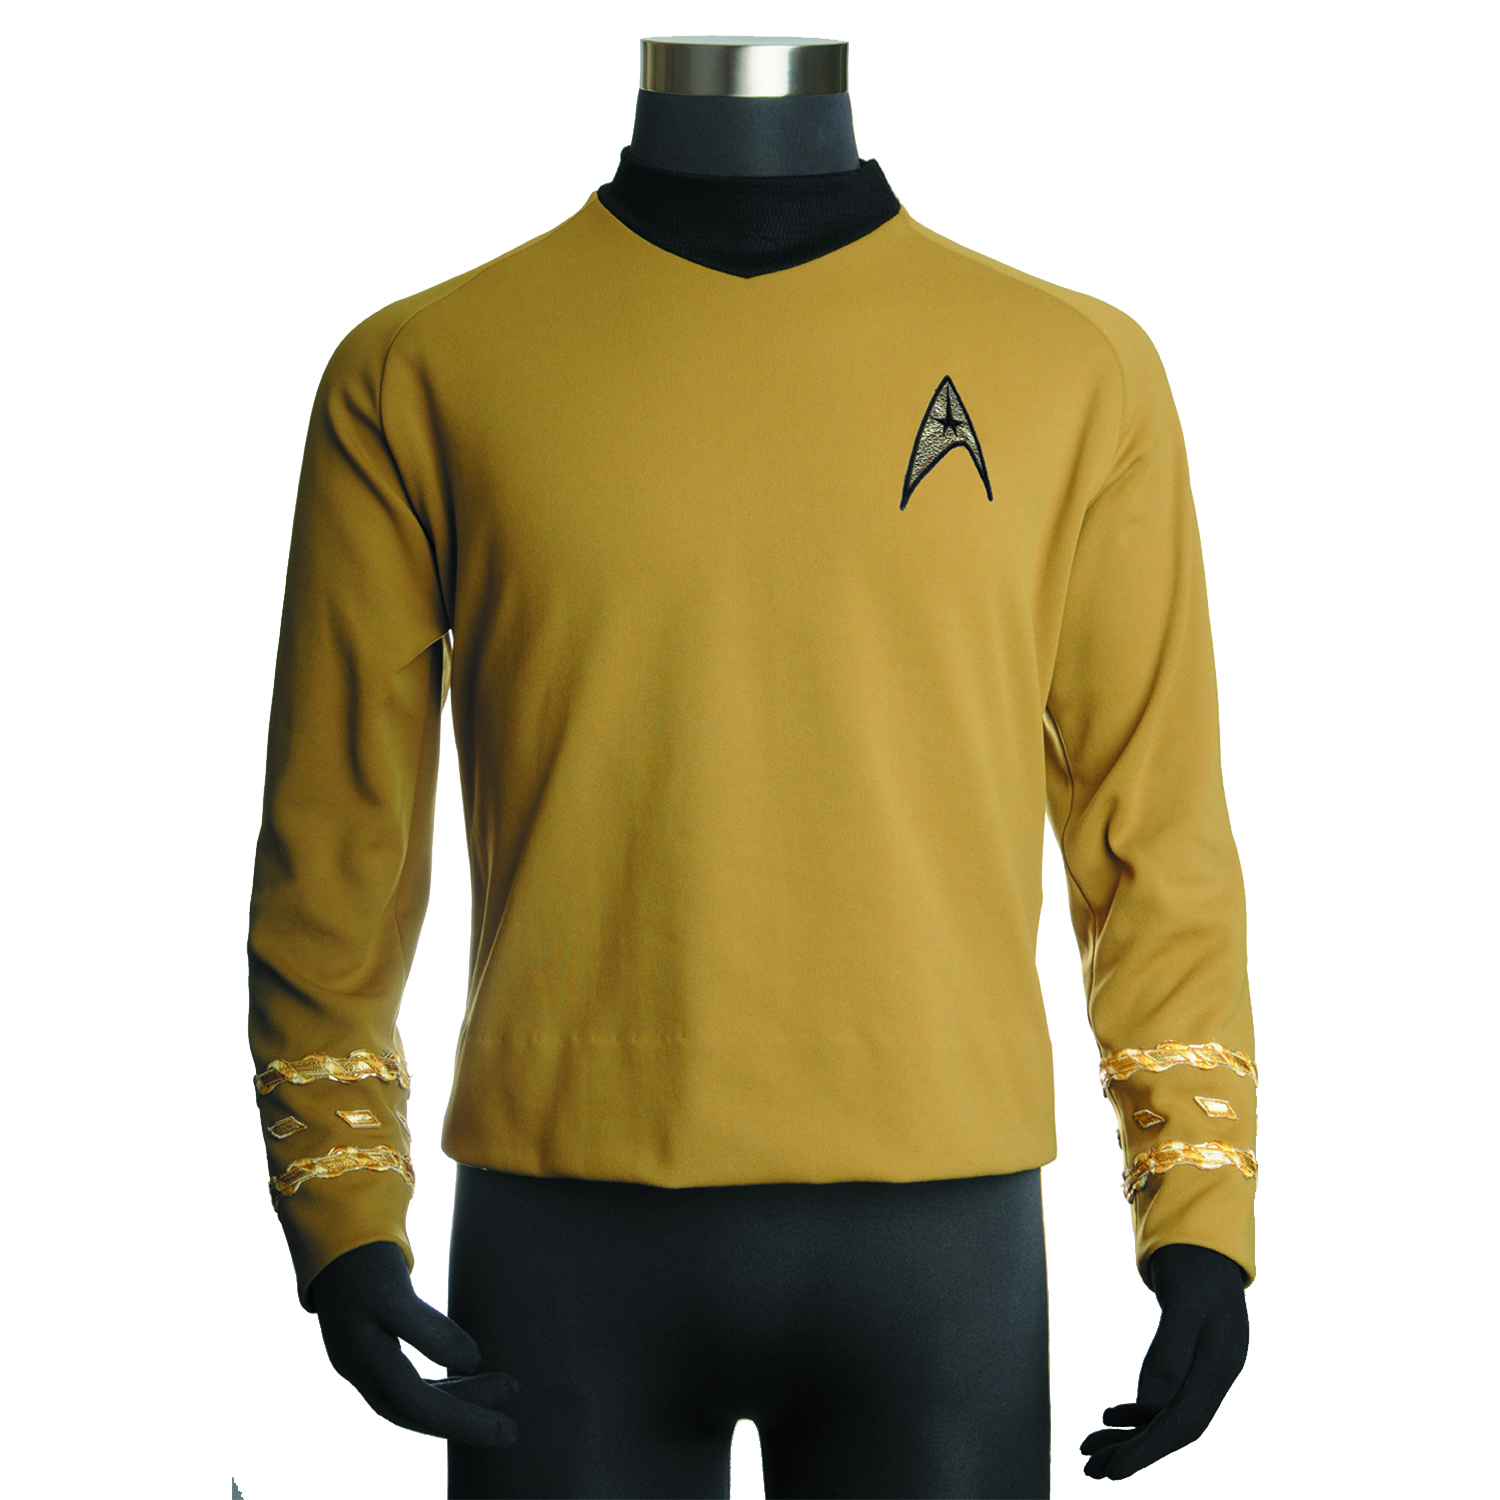 ST TOS CAPTAIN KIRK REPLICA TUNIC MED